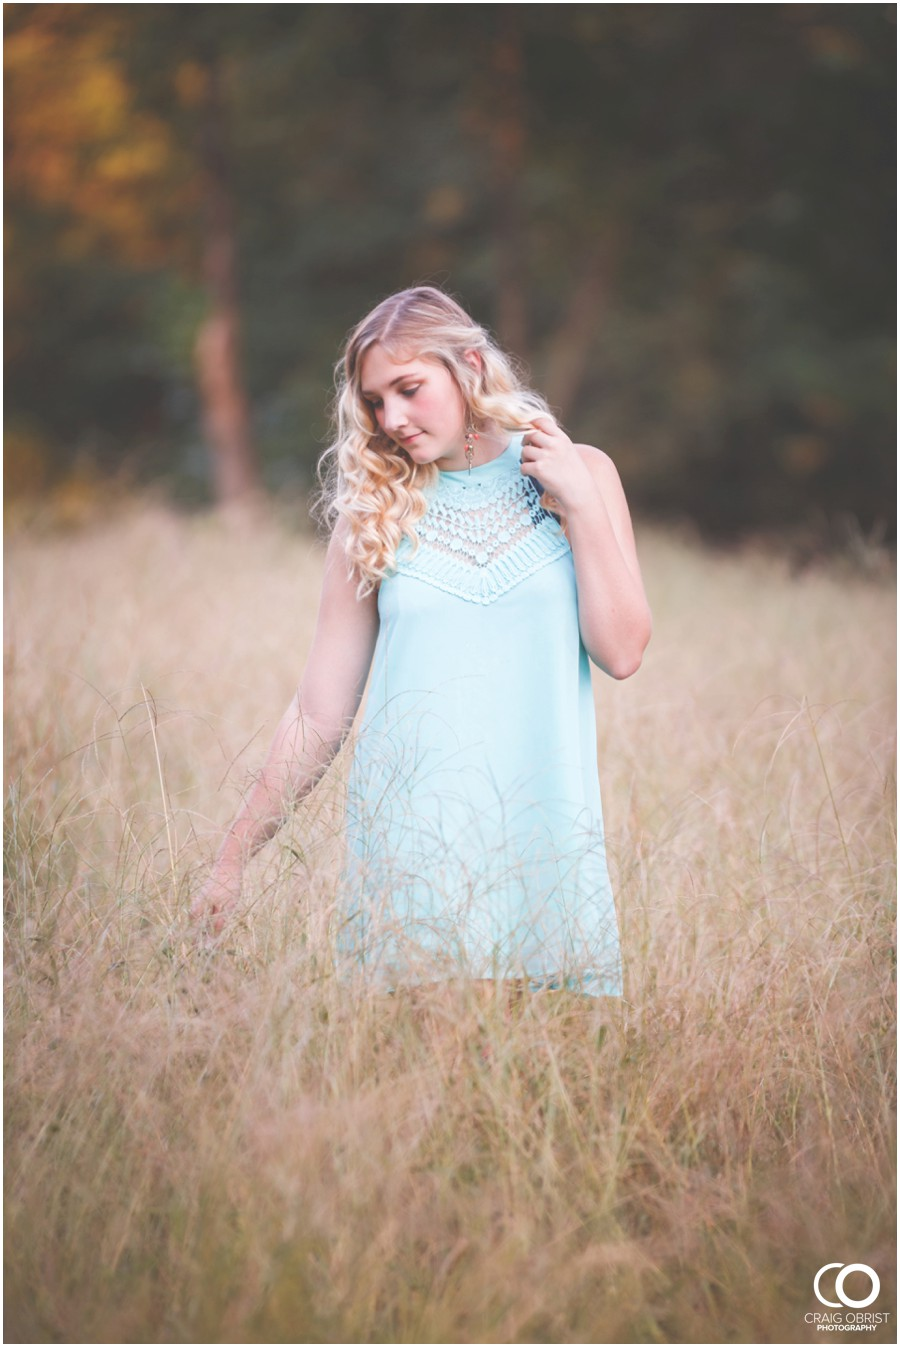 Buckhead Atlanta Senior Portraits Fashion wind_0010.jpg